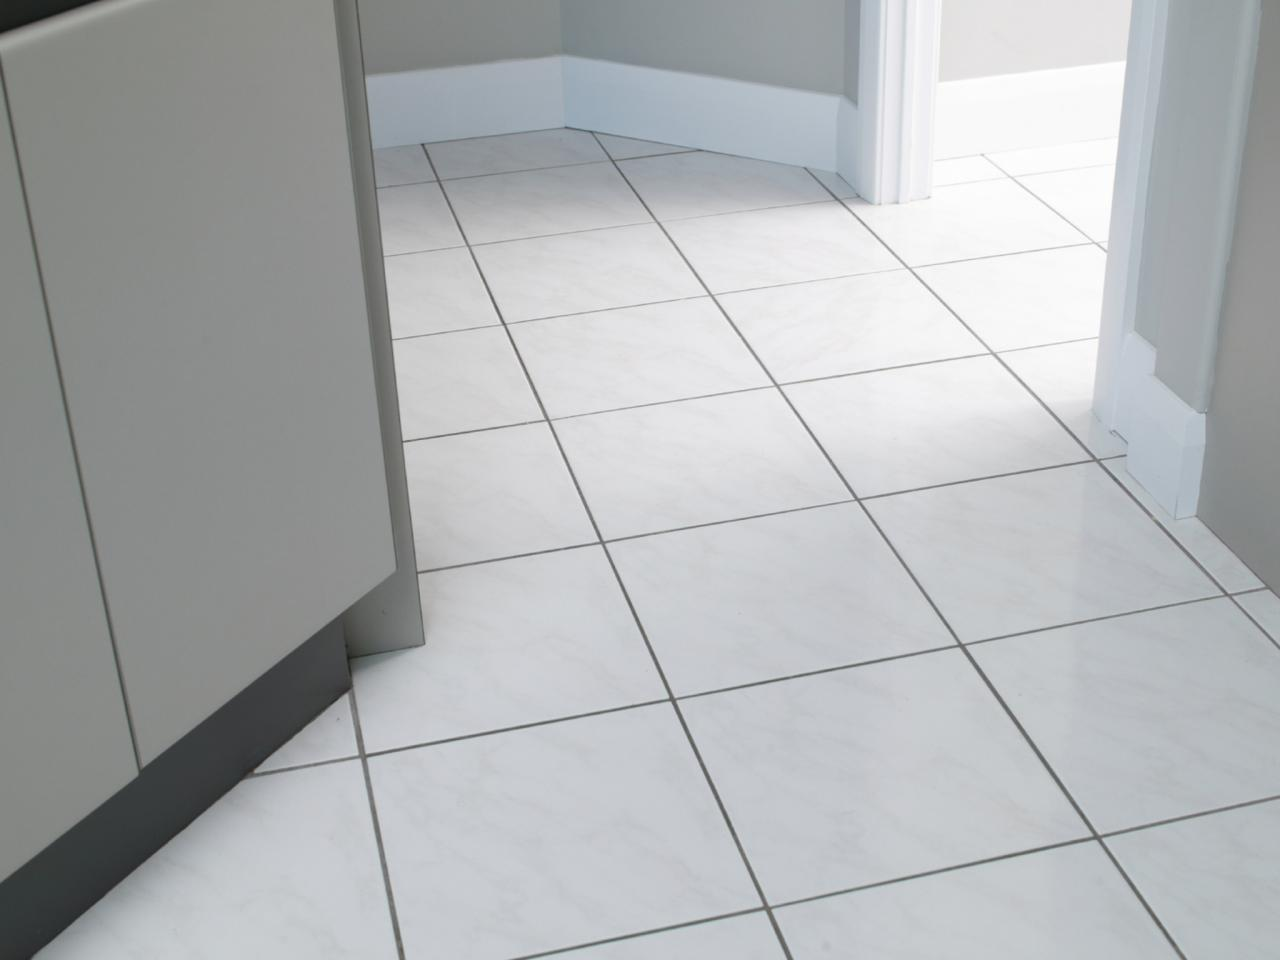 How to clean grout on bathroom floor tiles - Related To Ceramic Tile Cleaning